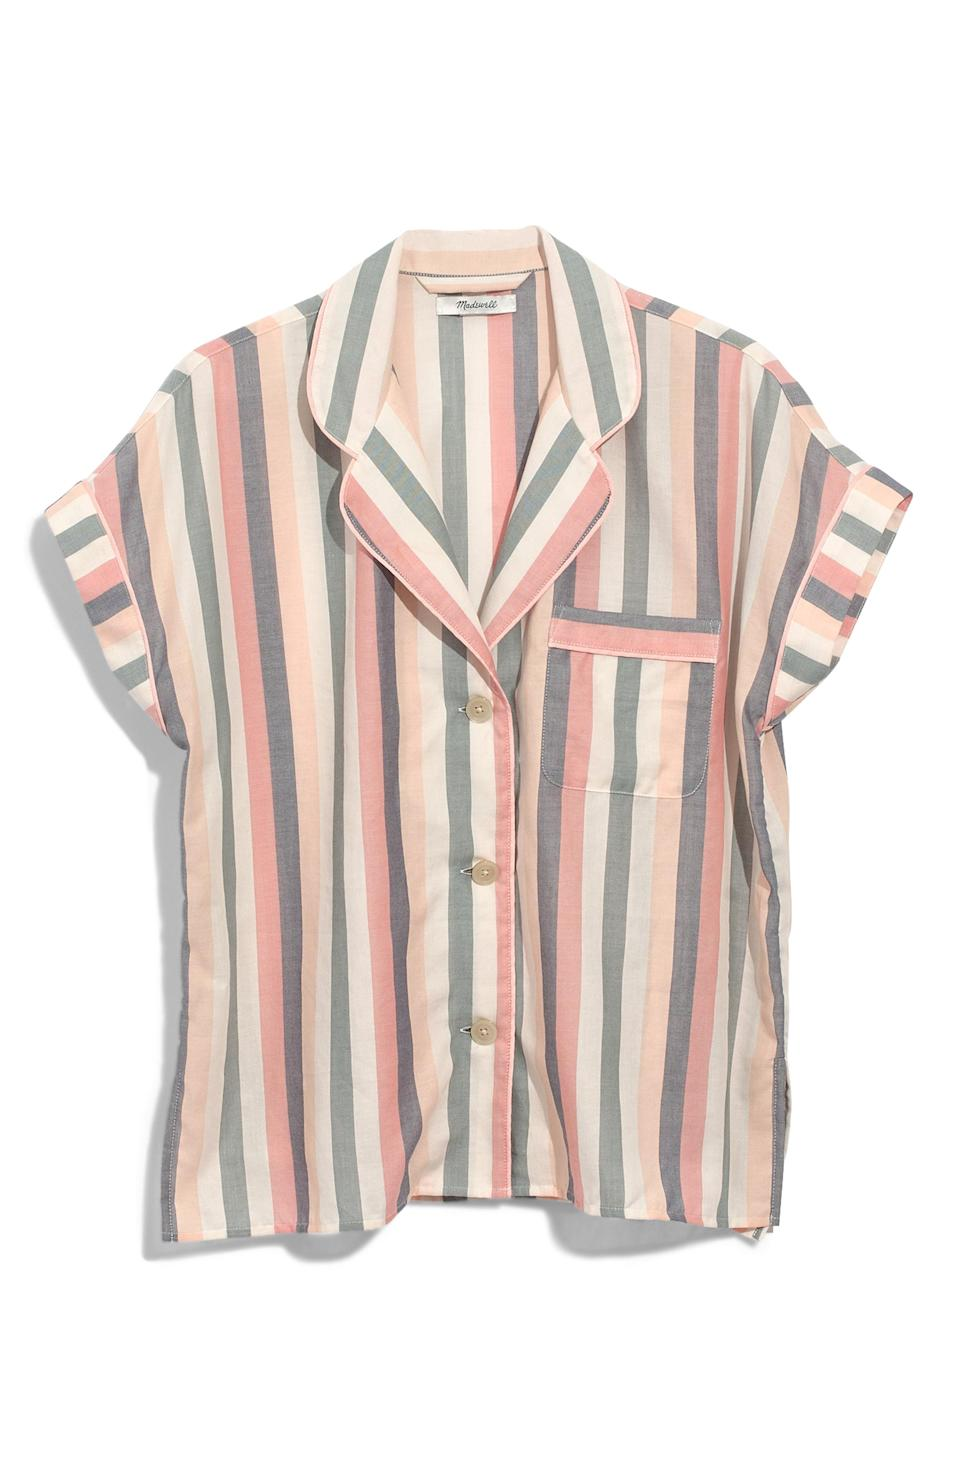 "<p><strong>Madewell</strong></p><p>nordstrom.com</p><p><strong>$34.99</strong></p><p><a href=""https://shop.nordstrom.com/s/madewell-bedtime-lonnie-stripe-pajama-top/5133107"" rel=""nofollow noopener"" target=""_blank"" data-ylk=""slk:SHOP NOW"" class=""link rapid-noclick-resp"">SHOP NOW</a></p><p>We heart this <a href=""https://www.womansday.com/relationships/dating-marriage/a60733/brides-first-look-wedding-prank-photo/"" rel=""nofollow noopener"" target=""_blank"" data-ylk=""slk:cozy PJ top"" class=""link rapid-noclick-resp"">cozy PJ top</a> - and we know she will too.</p>"